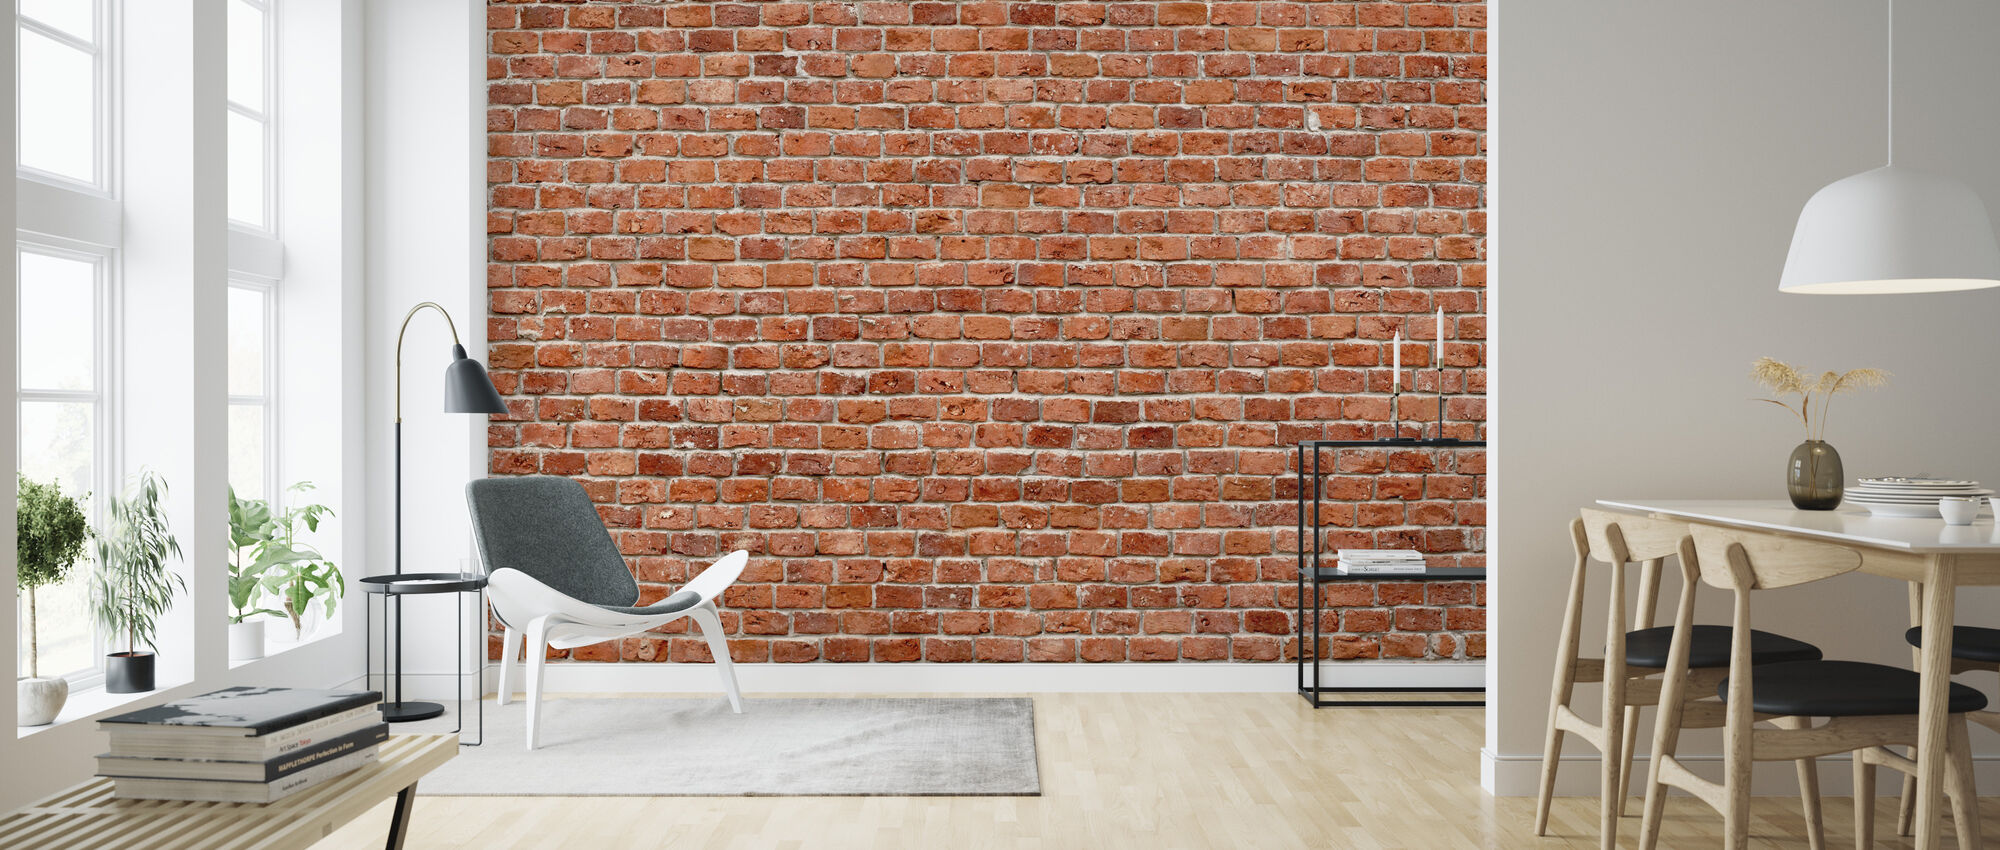 Brick Wall - Wallpaper - Living Room